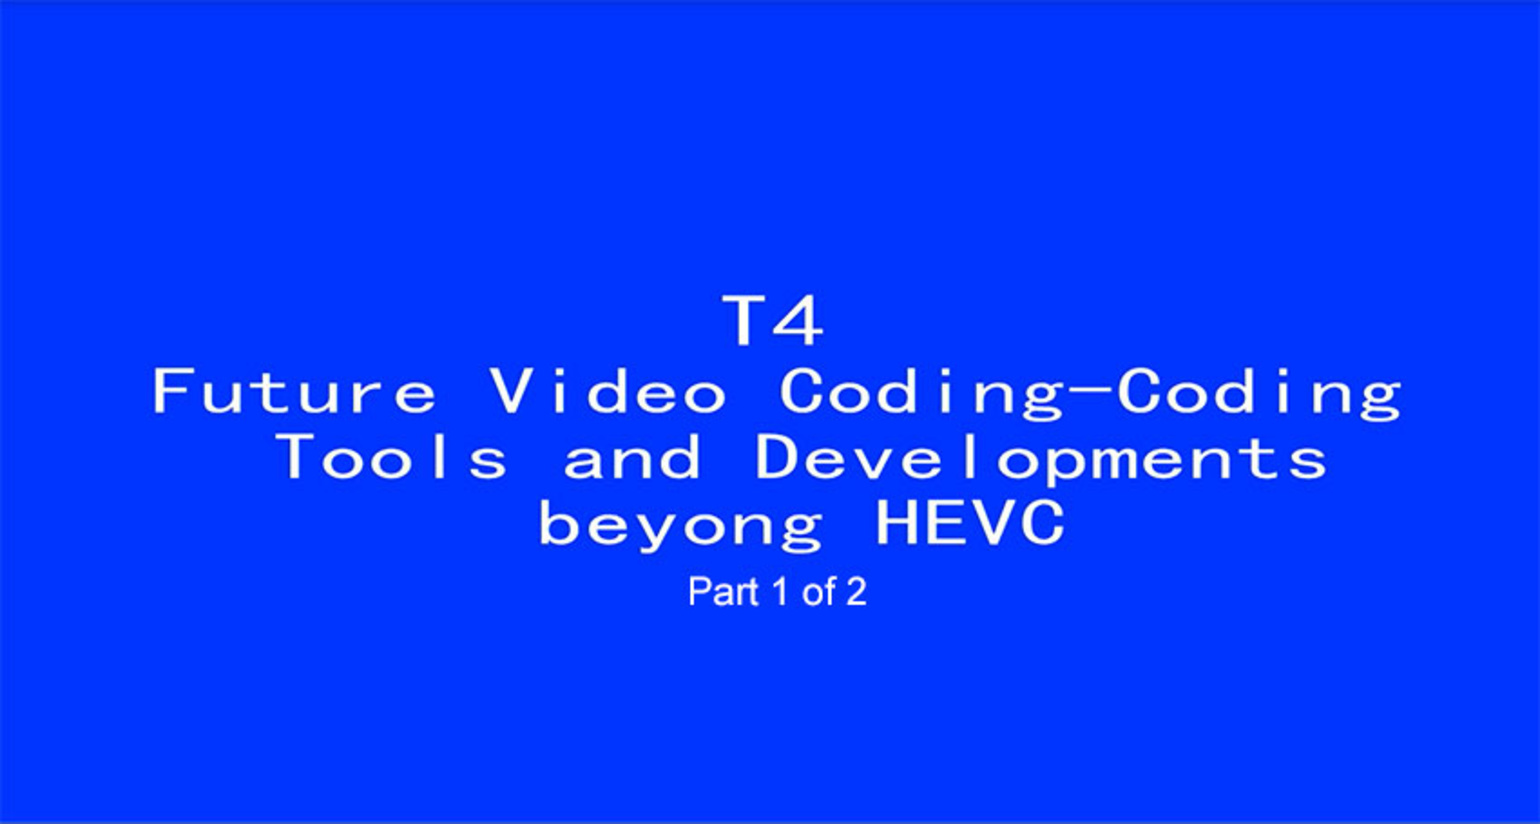 ICIP 2017 Tutorial - Future Video Coding: Coding Tools and Developments beyond HEVC [Part 1 of 2]